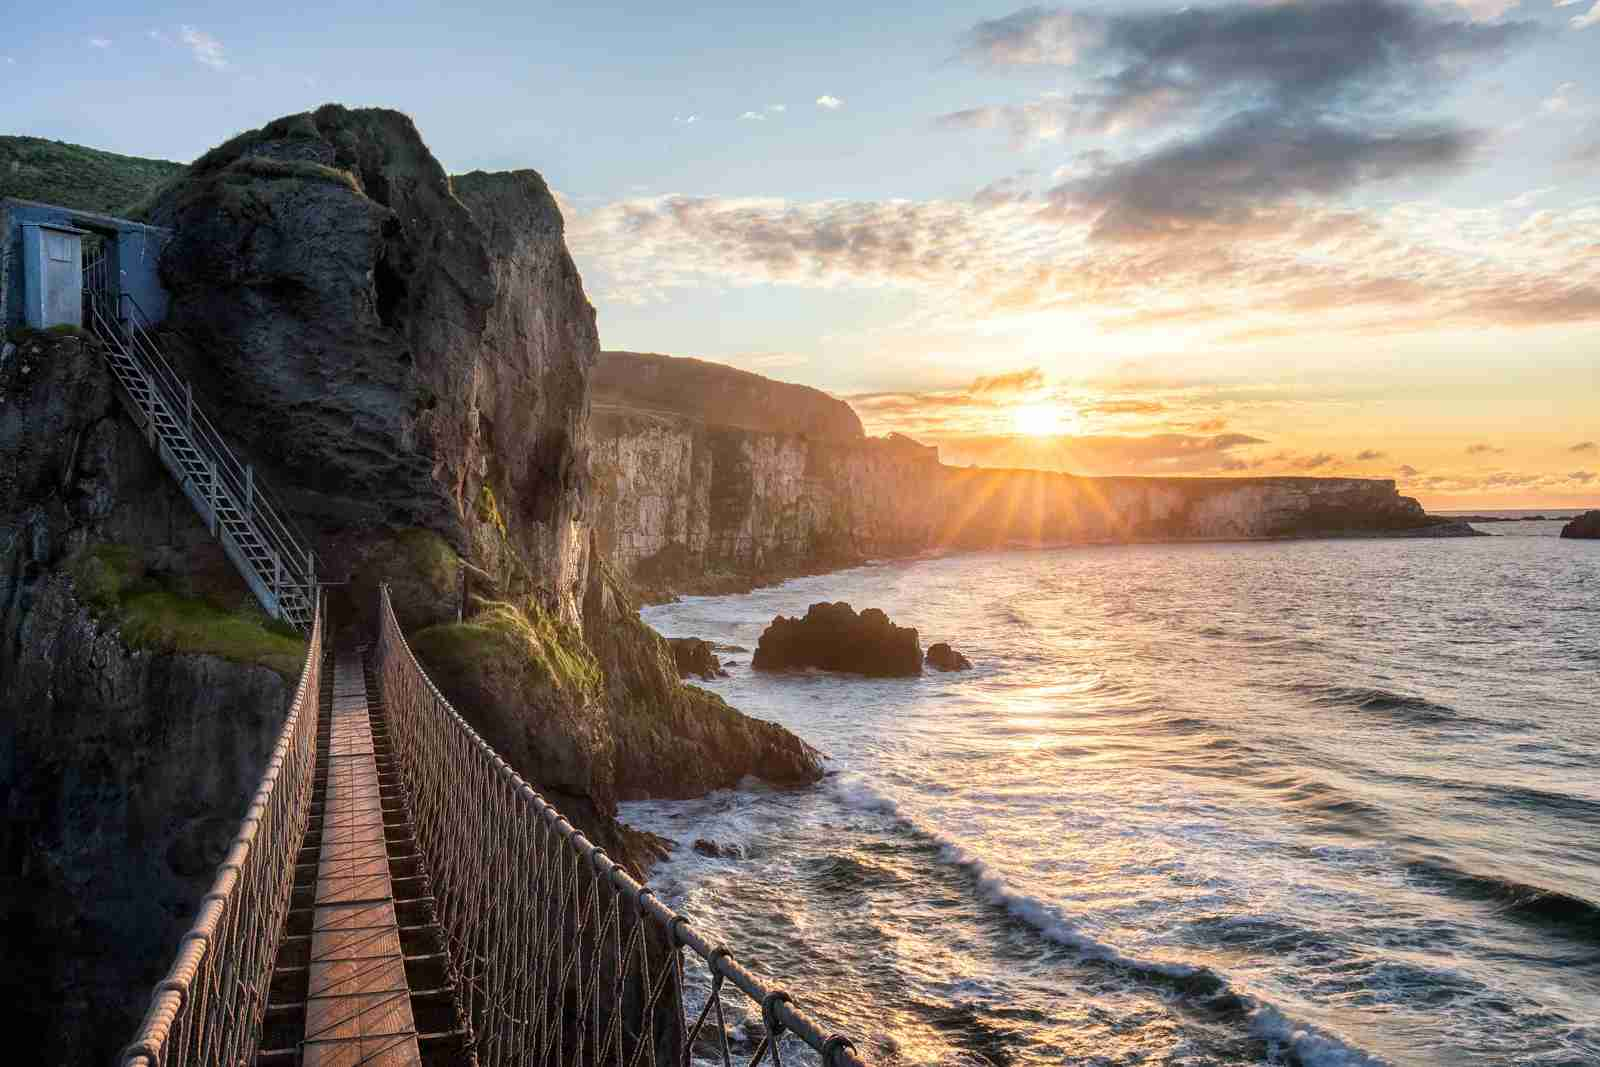 Carrick-a-Rede Rope Bridge. (Photo by James Kerwin/Getty Images)